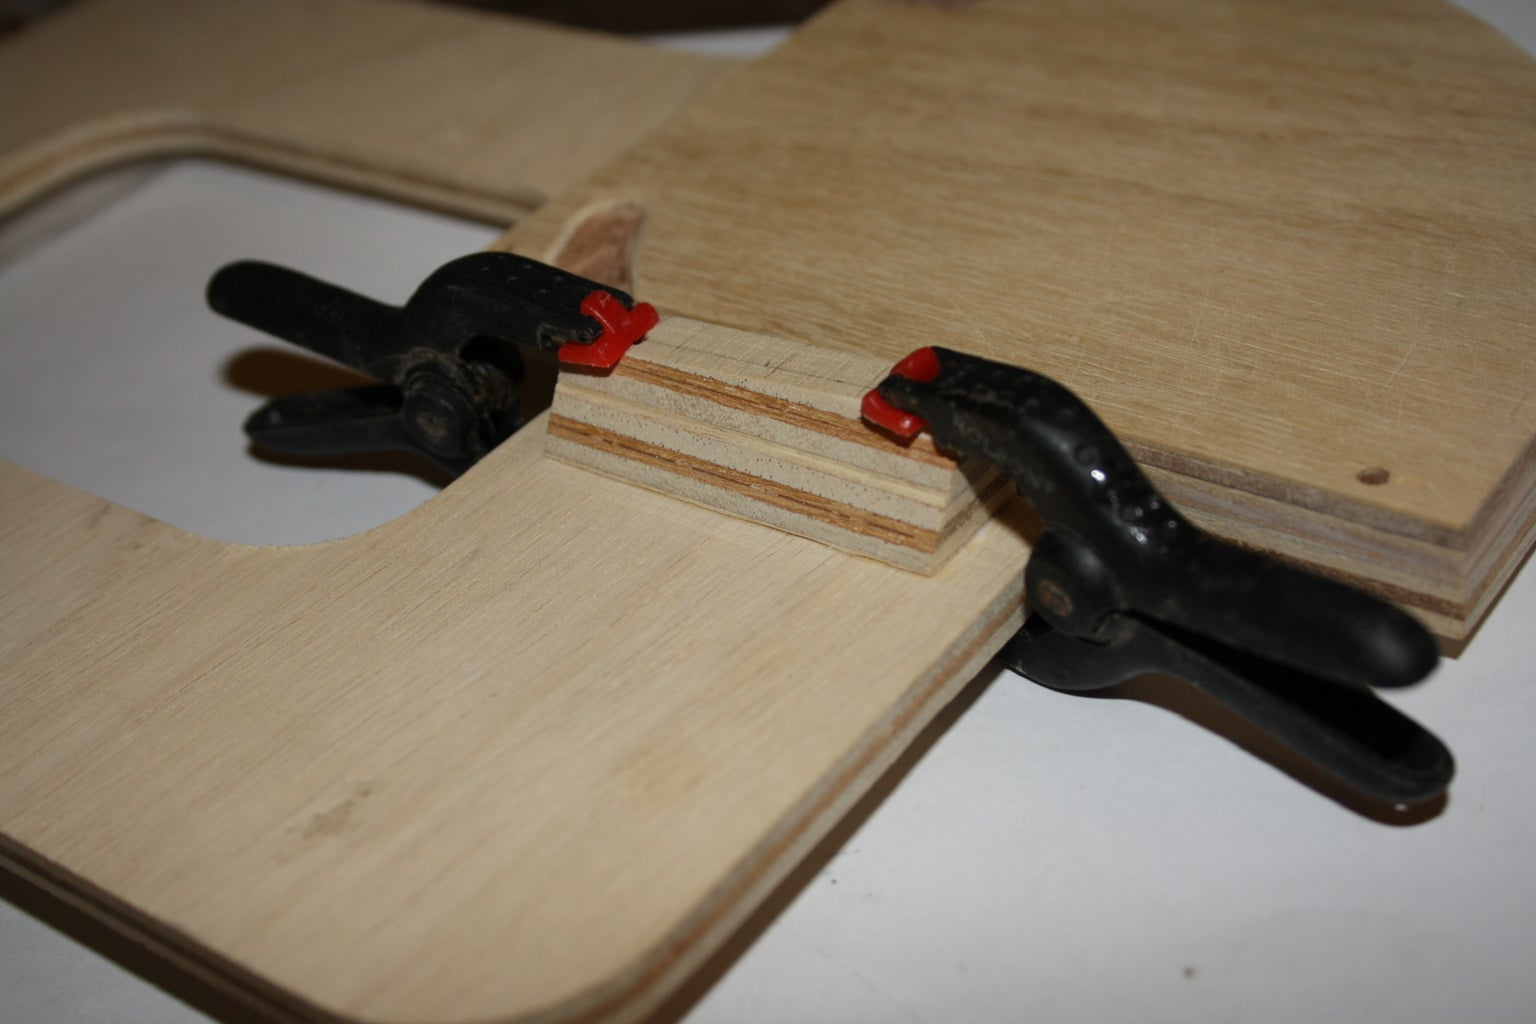 Attaching the Fixed Blade to the C-Shape Support.